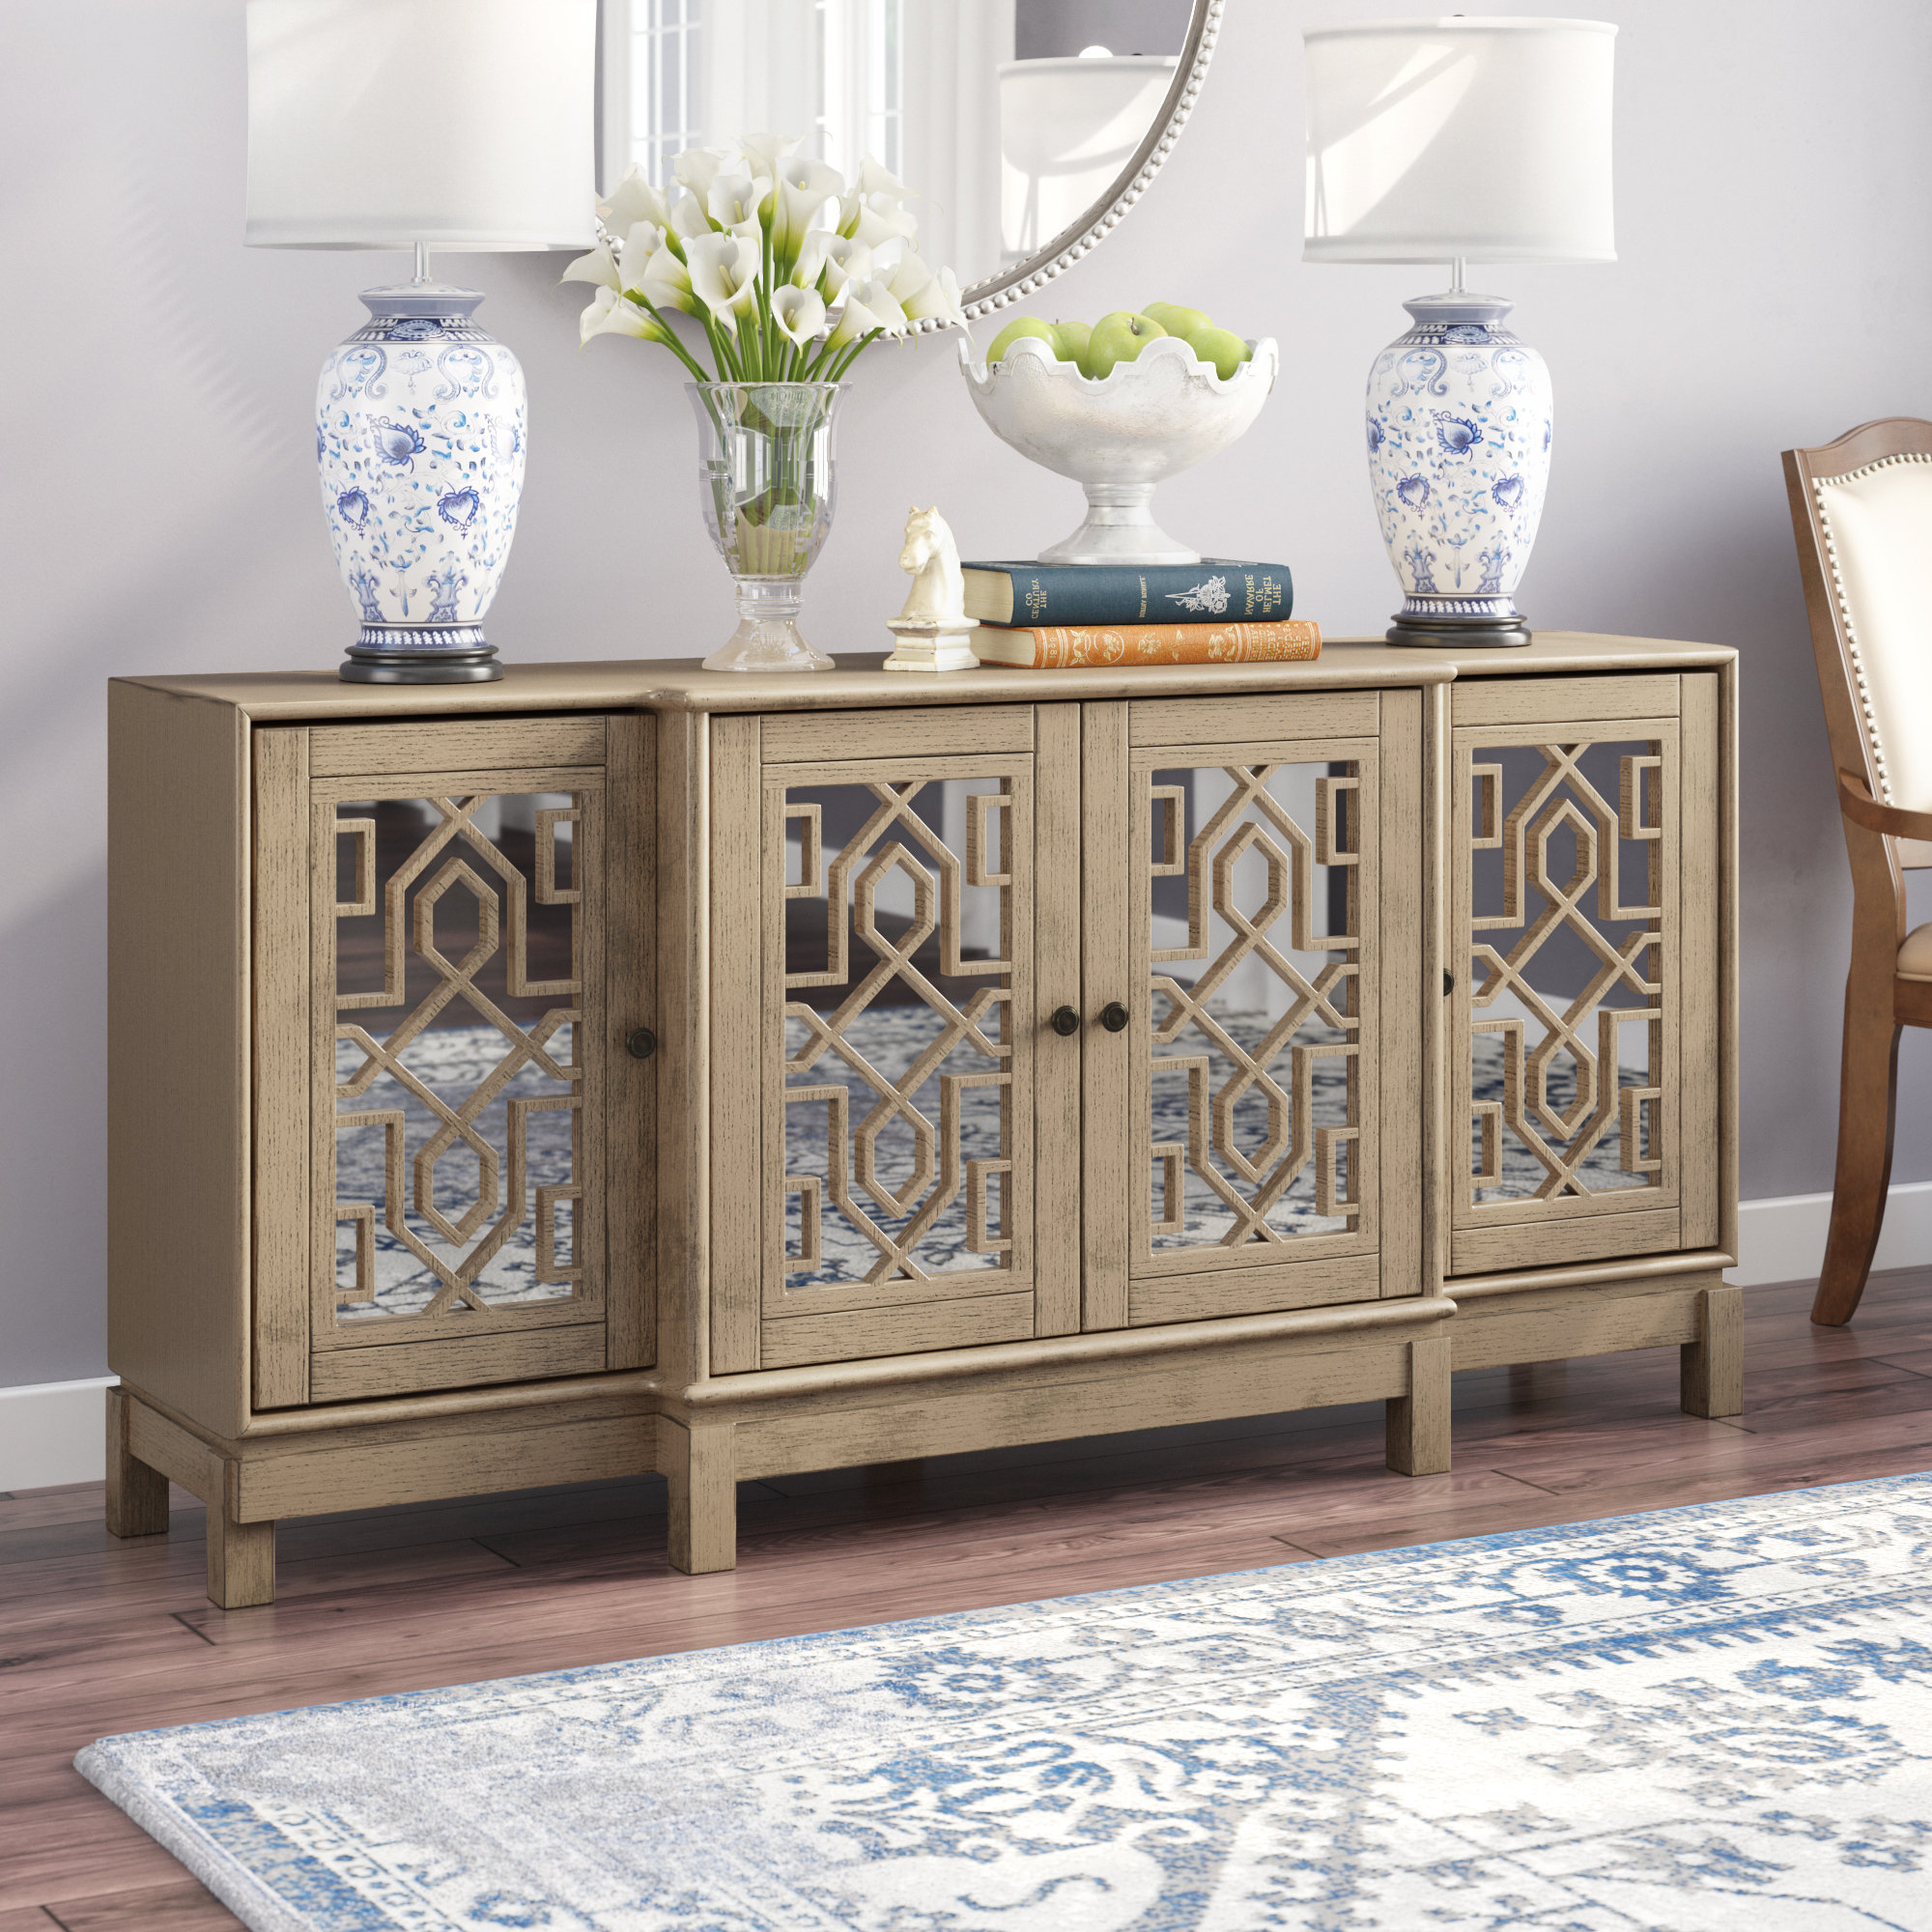 Gold & Silver Sideboards & Buffets You'll Love In 2019 | Wayfair With Regard To Wattisham Sideboards (View 3 of 20)